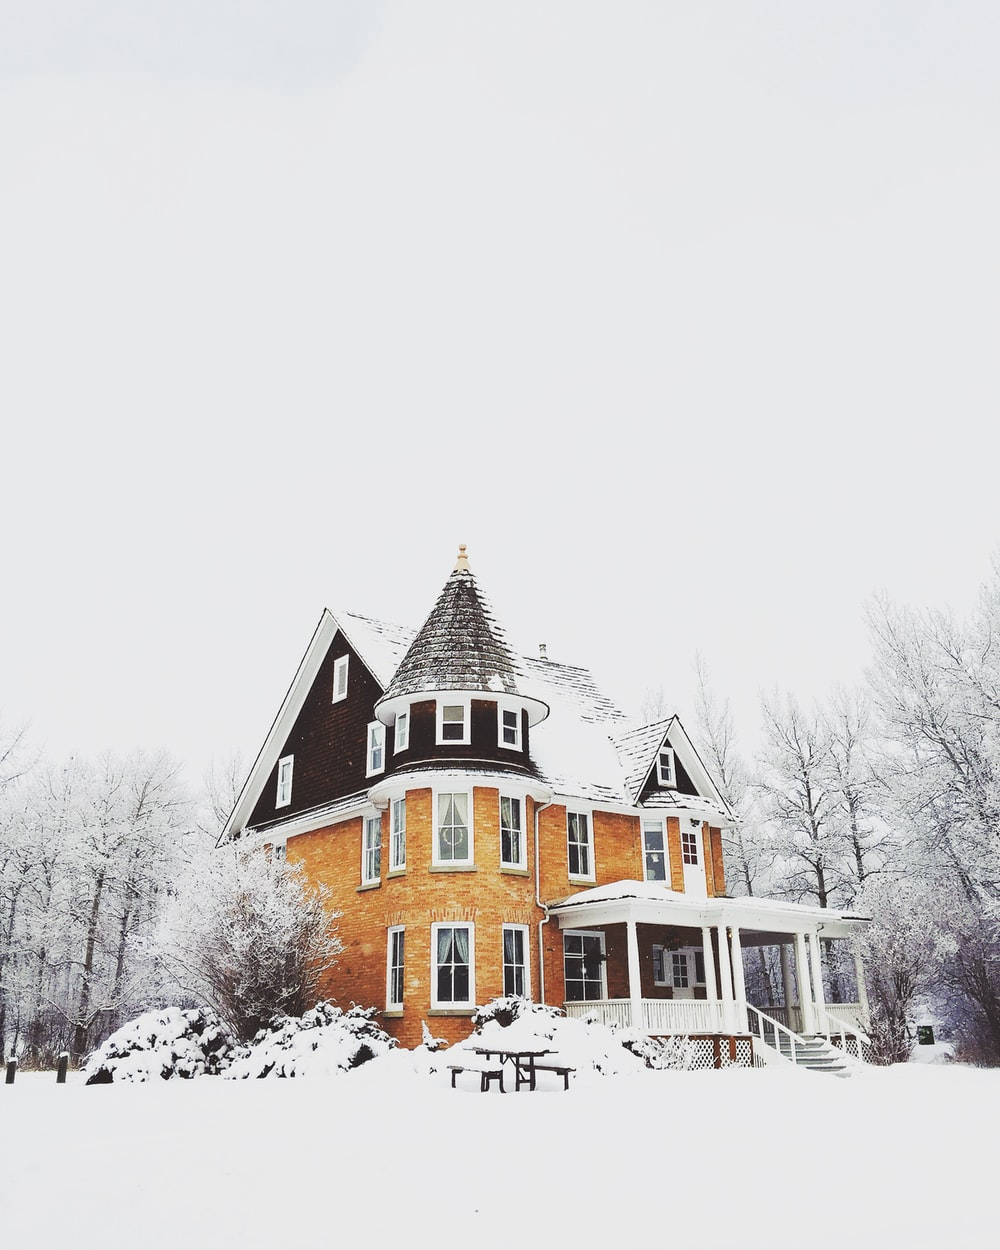 An elegant house with a turret covered in snow in winter